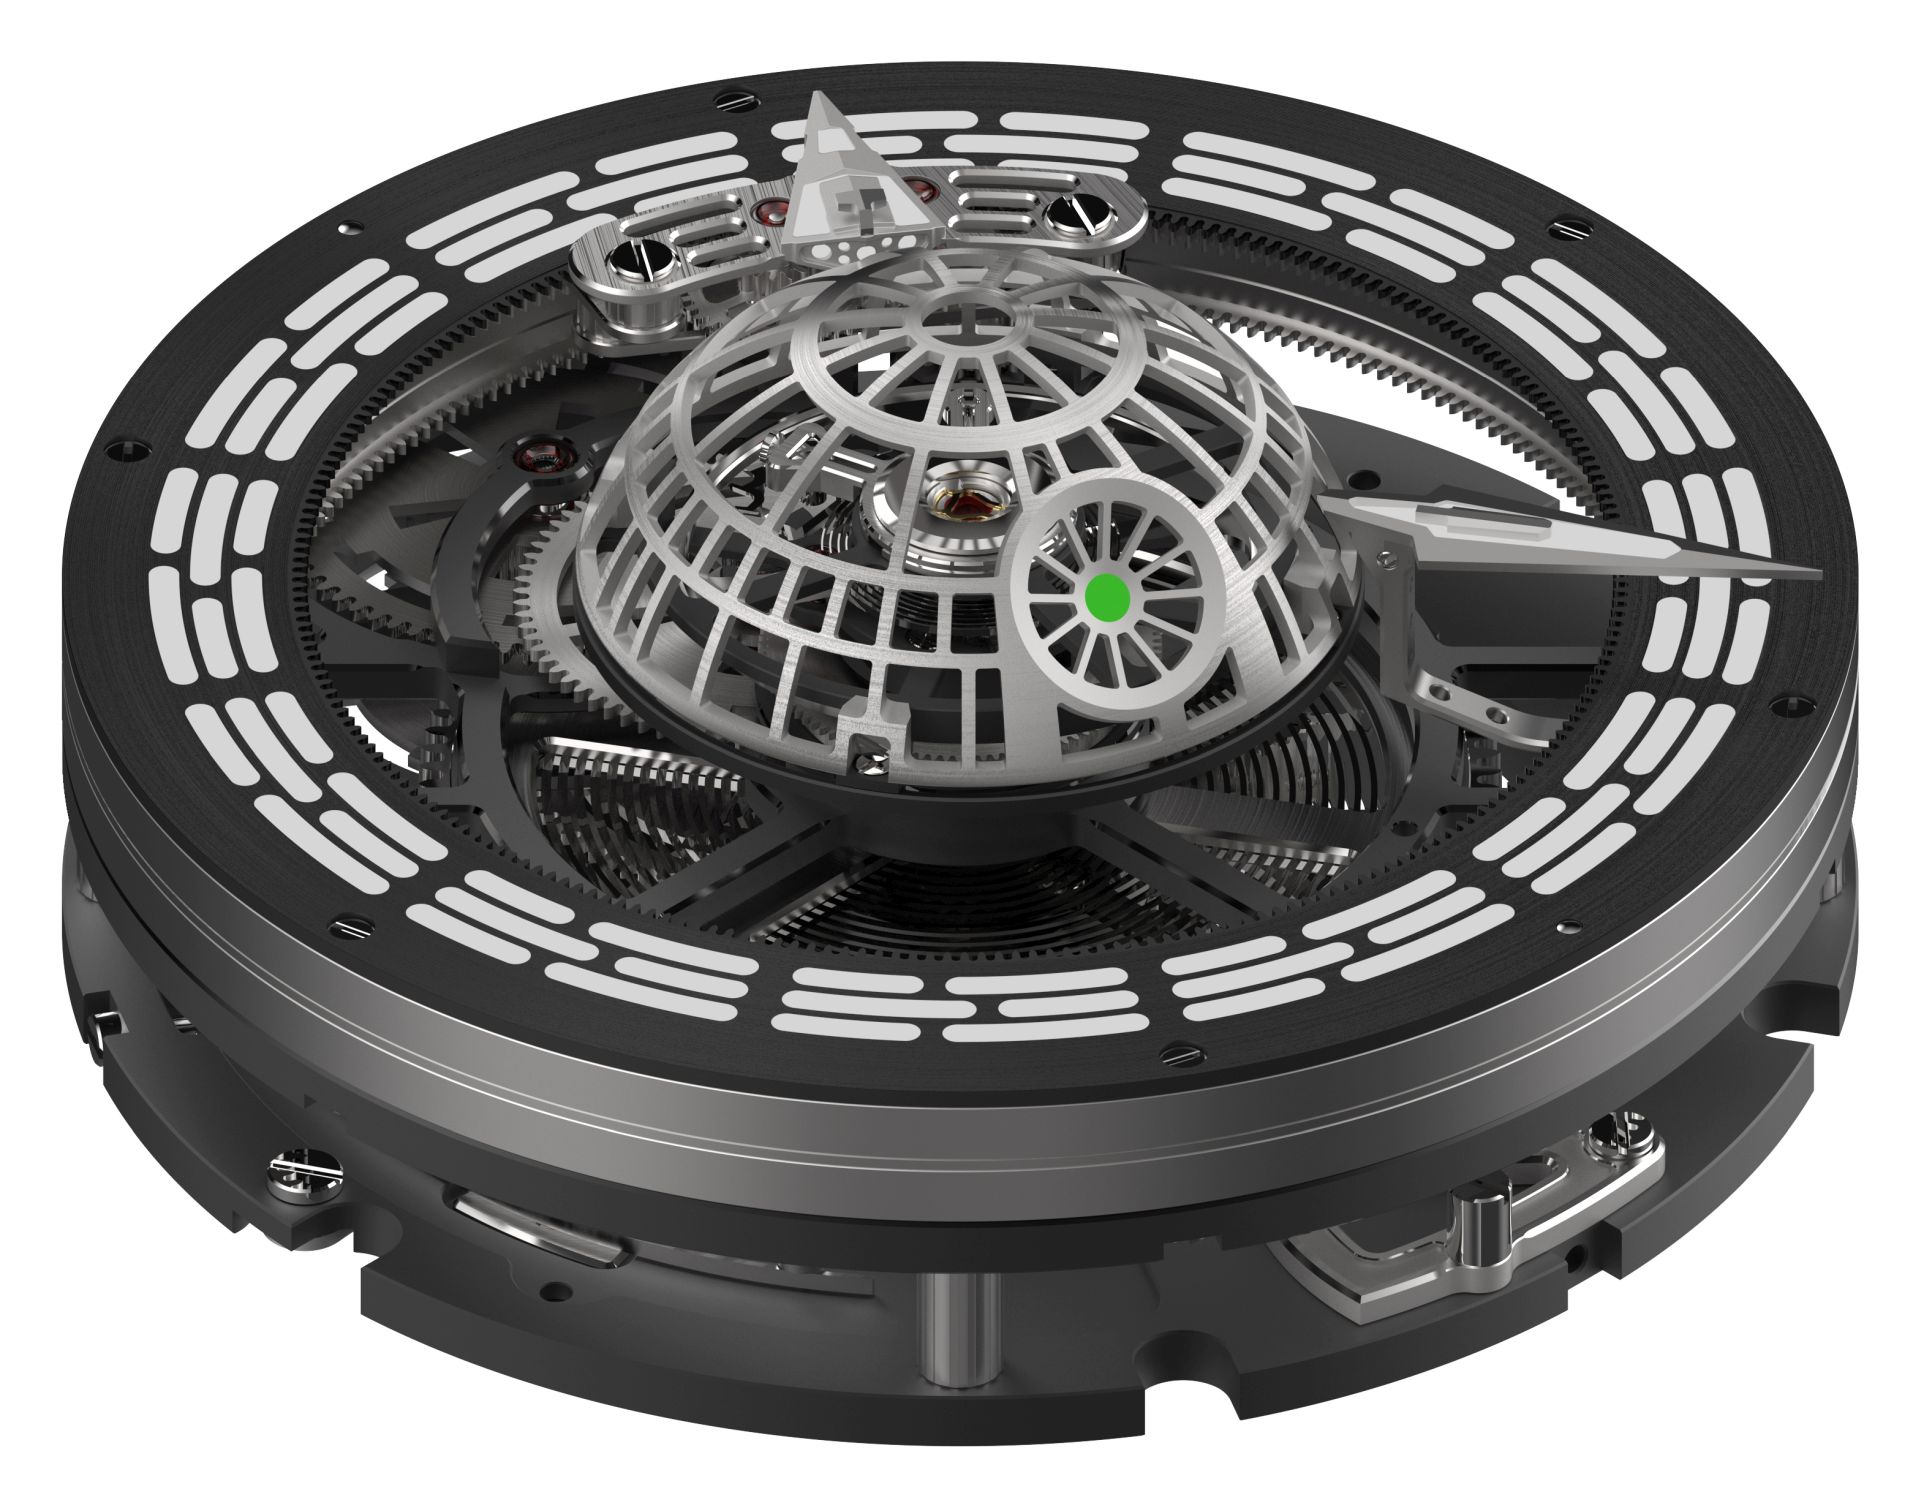 Kross Studio Death Star Tourbillon